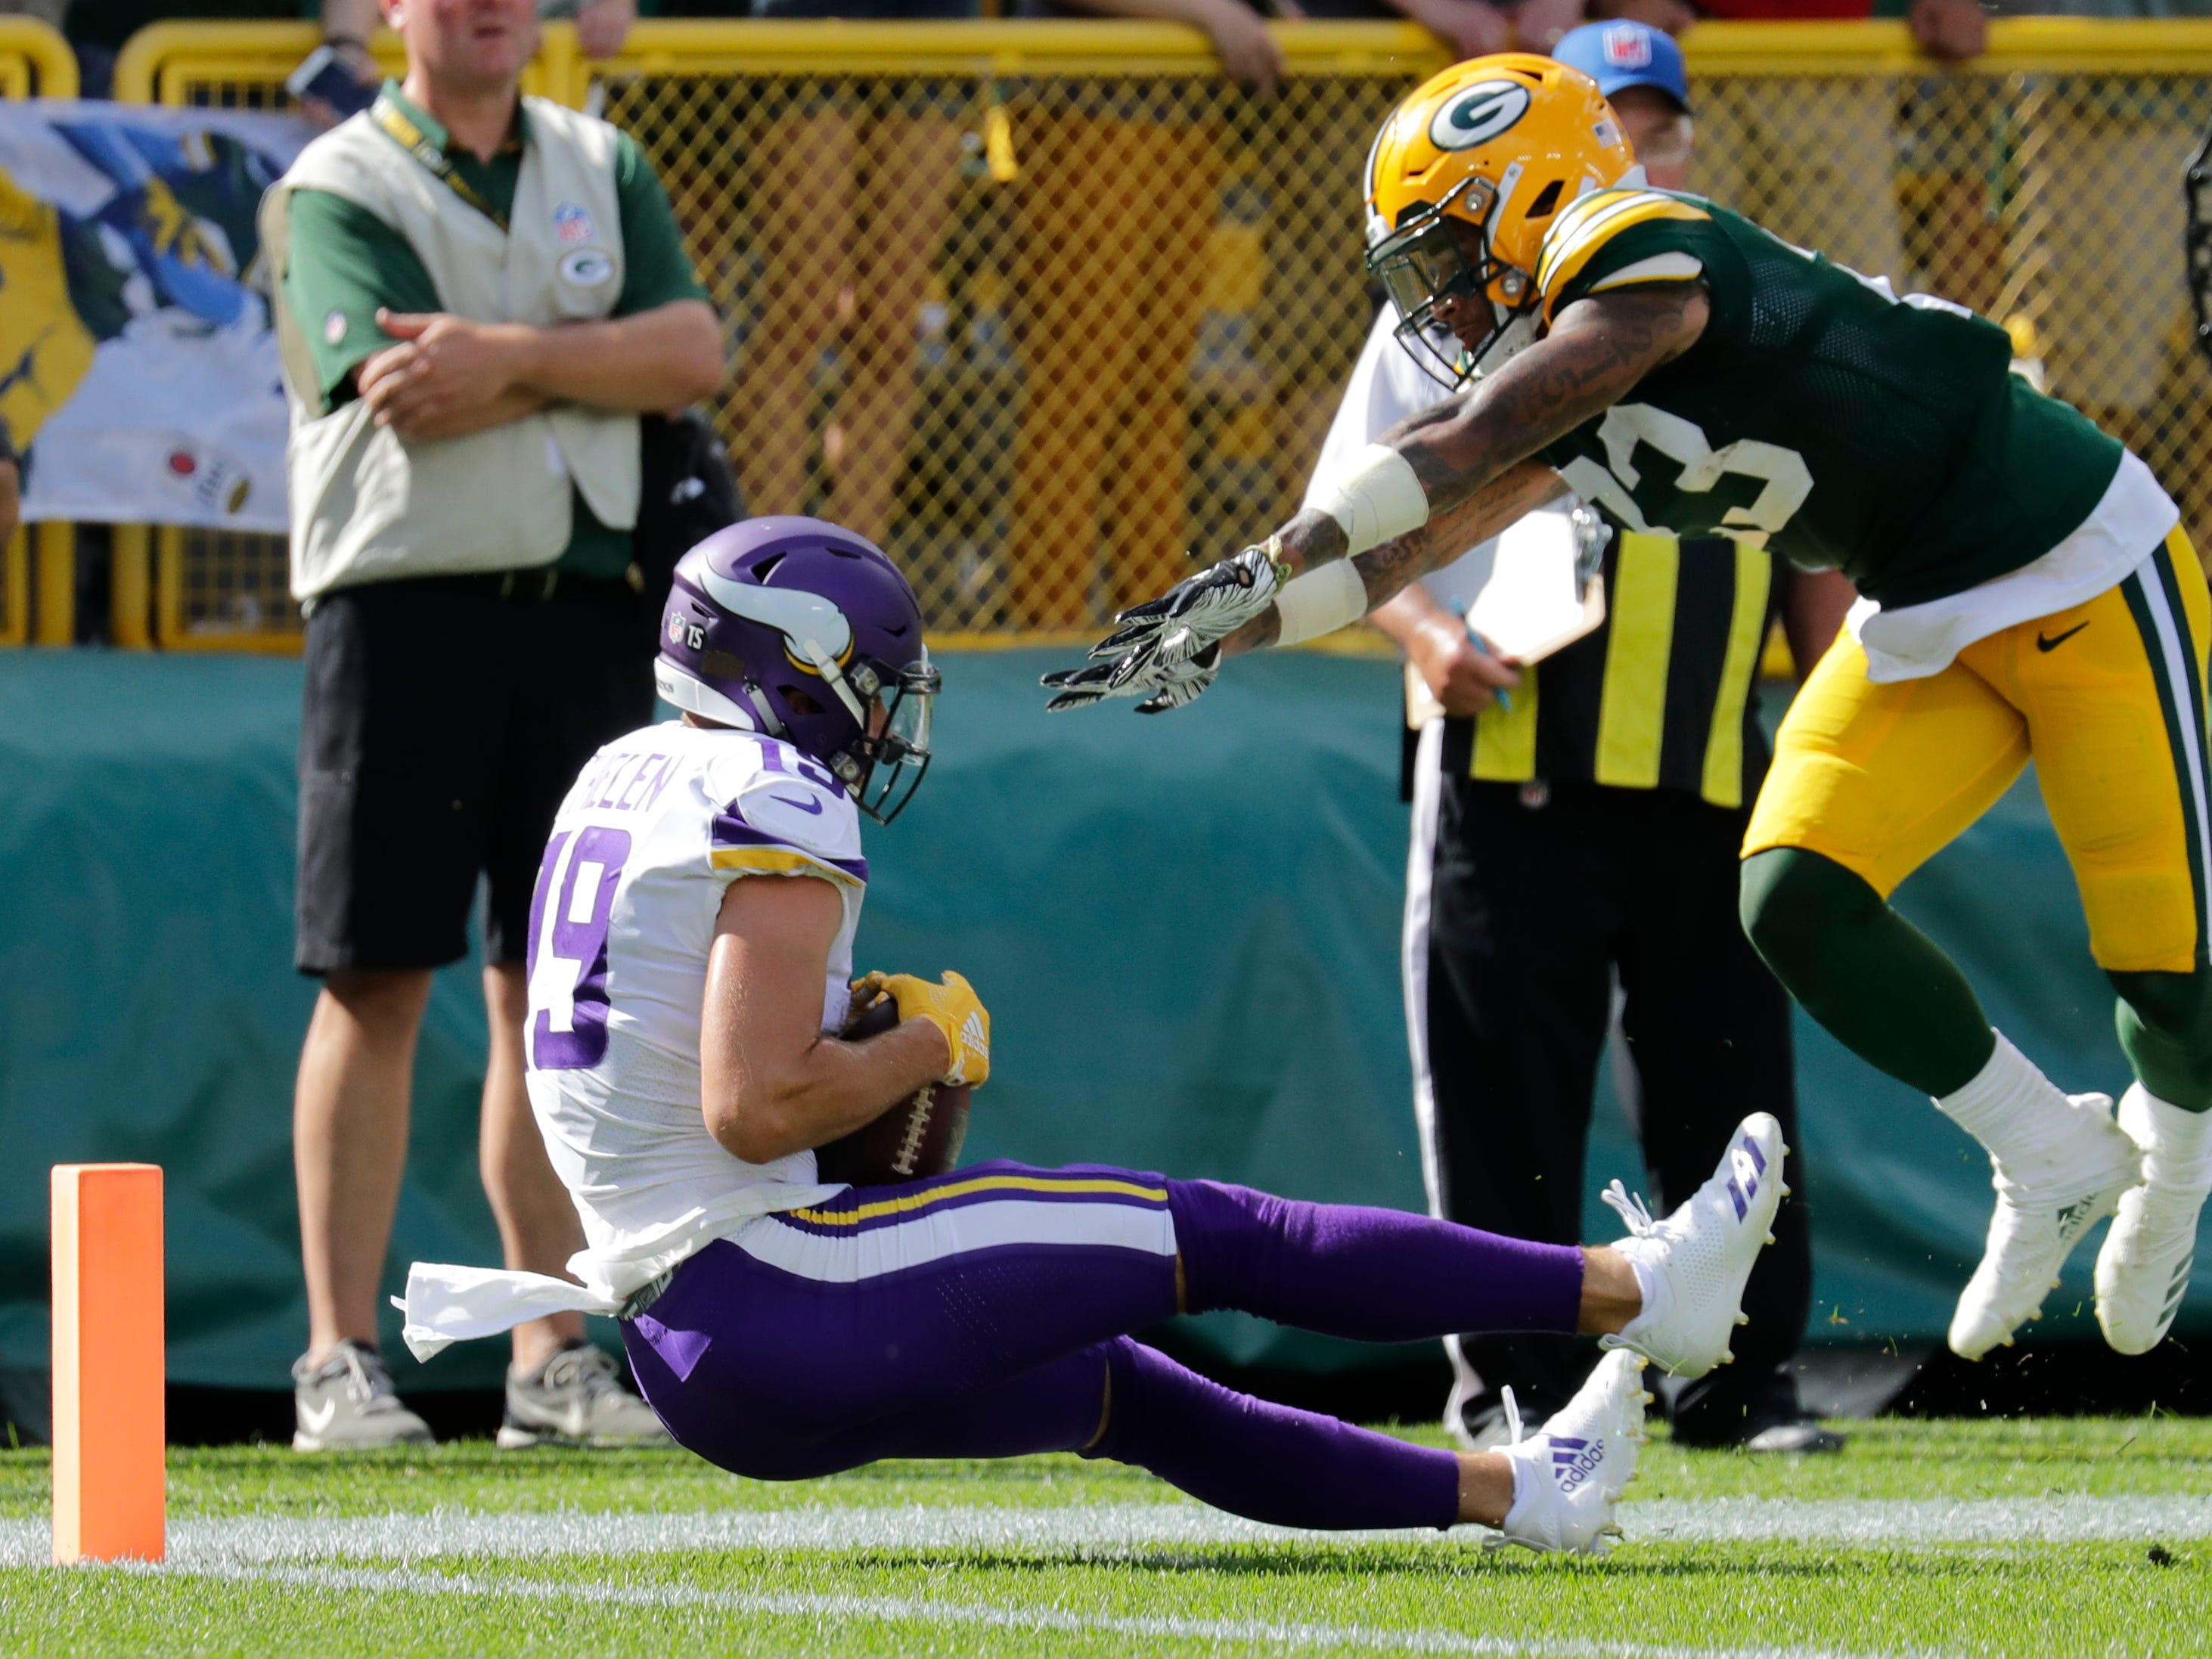 Minnesota Vikings wide receiver Adam Thielen (19) scores a touchdown against Green Bay Packers cornerback Jaire Alexander (23) late in the fourth quarter during their football game Sunday, Sept. 16, 2018, at Lambeau Field in Green Bay, Wis. The Vikings scored a two point conversion to tie the game.Dan Powers/USA TODAY NETWORK-Wisconsin